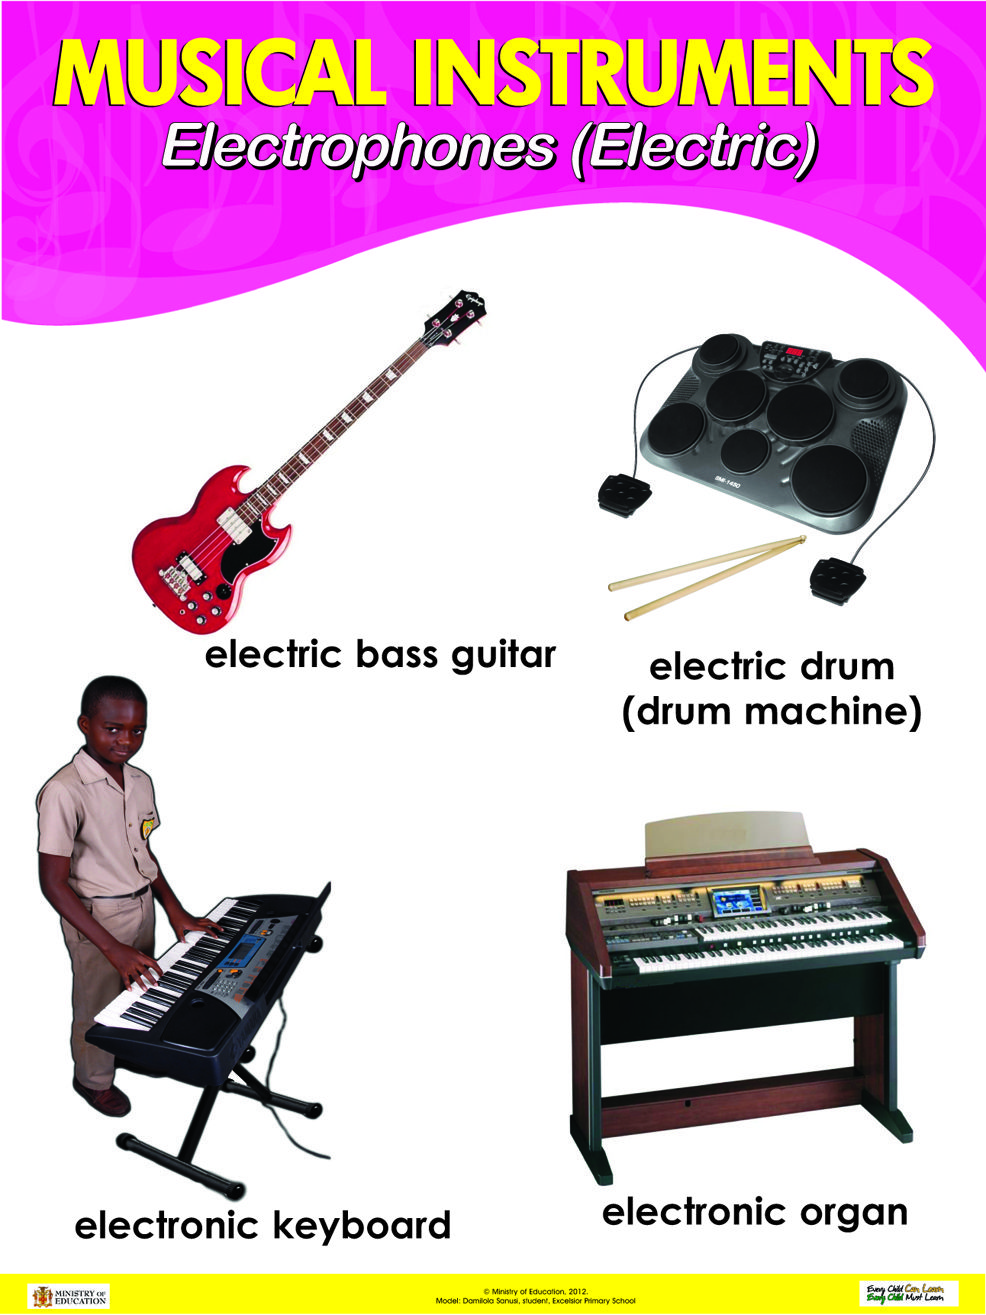 Electrophones or electric instruments | Grades 4-6 Music ...